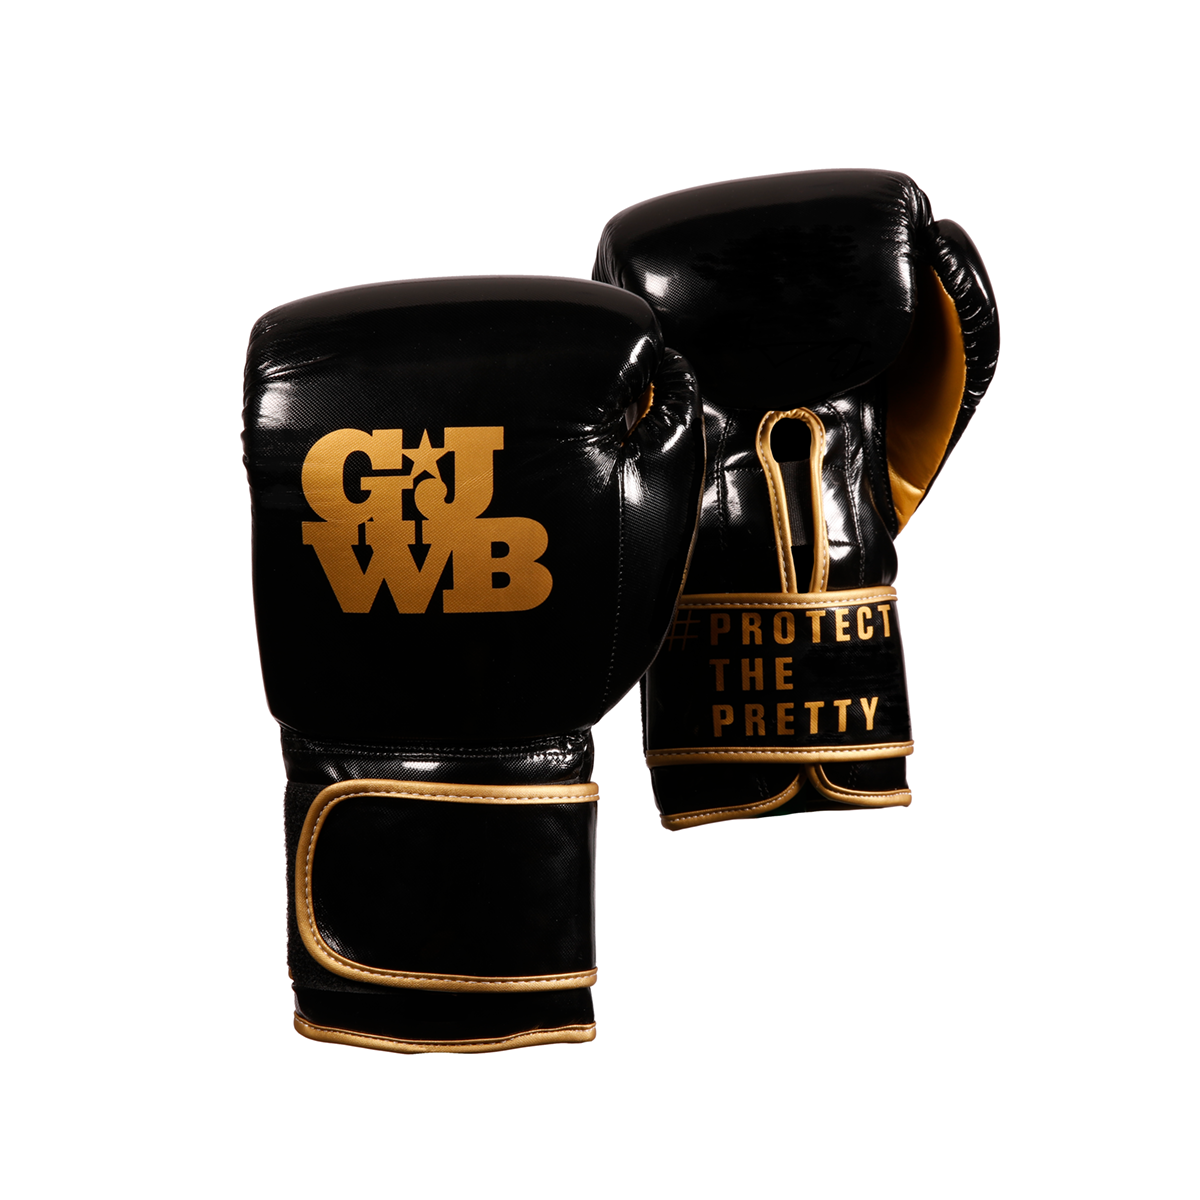 Black and gold boxing gloves for women with GJWB logo